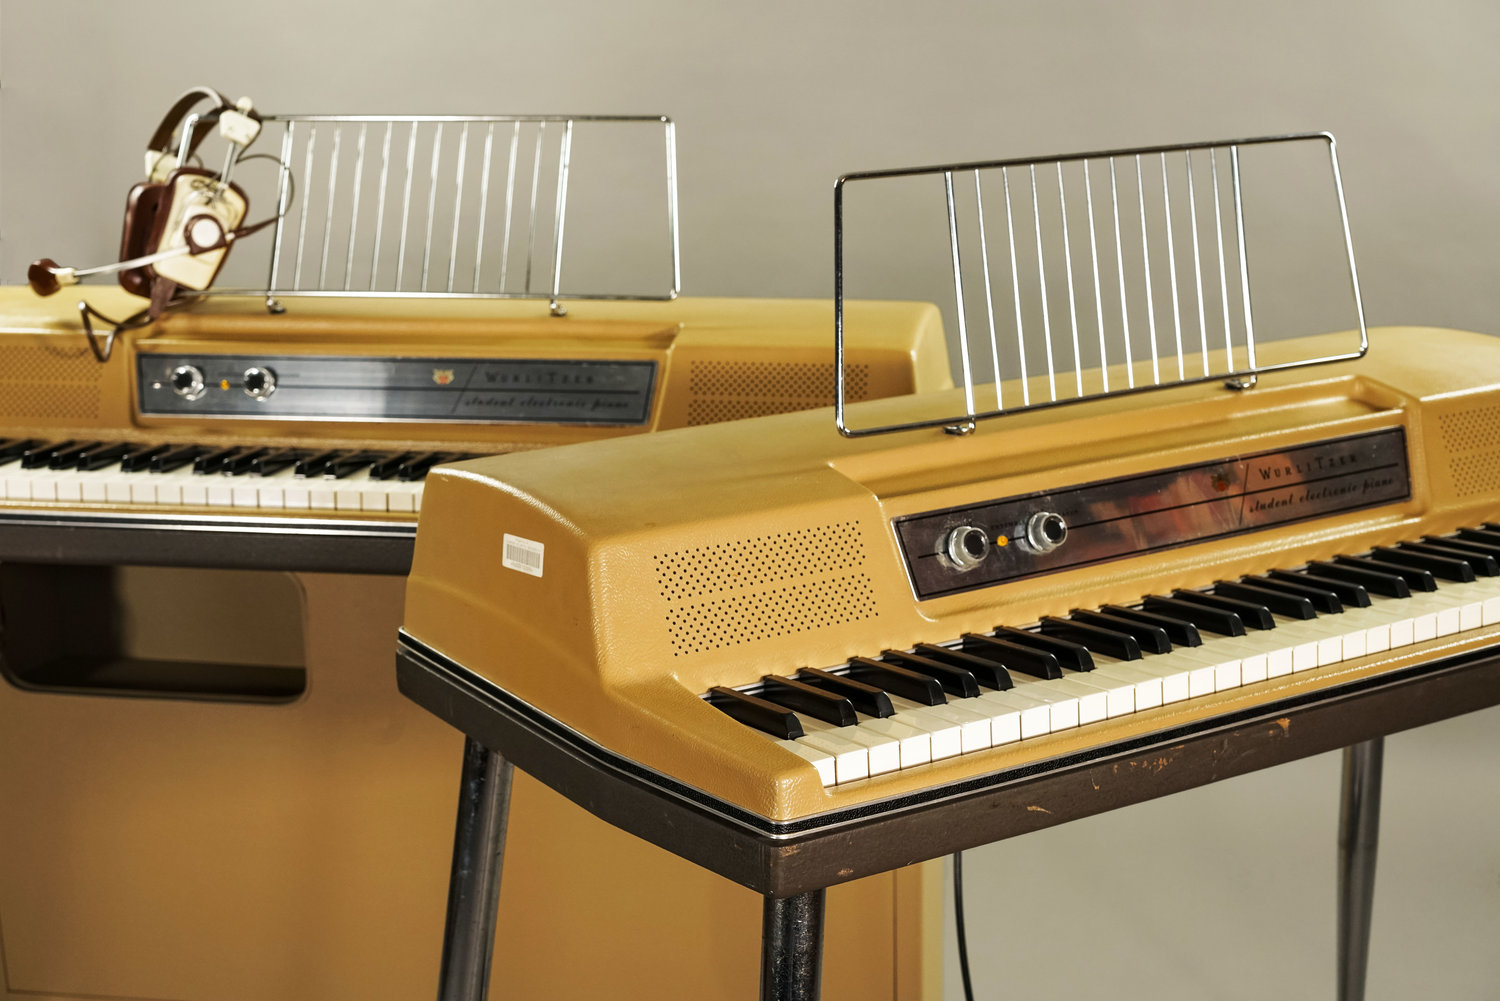 Differences Between a Wurlitzer 140 and a 200 or 200a